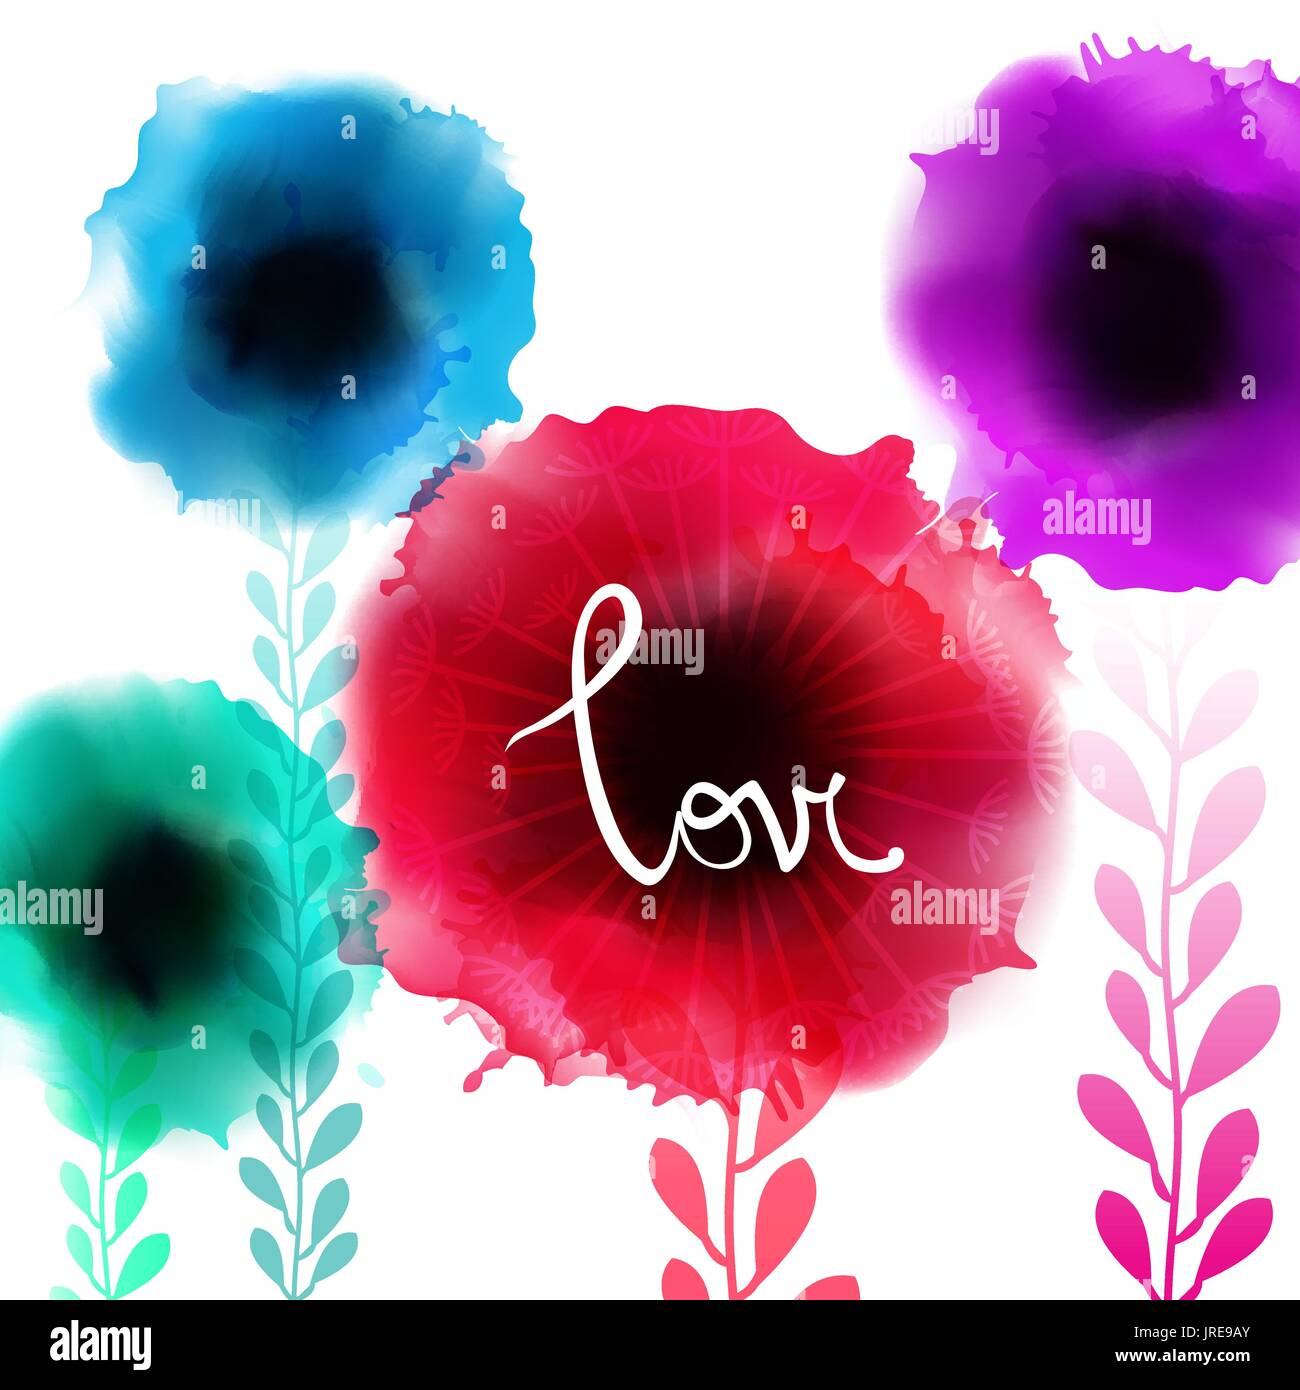 Watercolor romantic blooming poppy flowers isolated vector illustration Summer template for wedding, valentine day, mothers day, birthday, invitations - Stock Vector